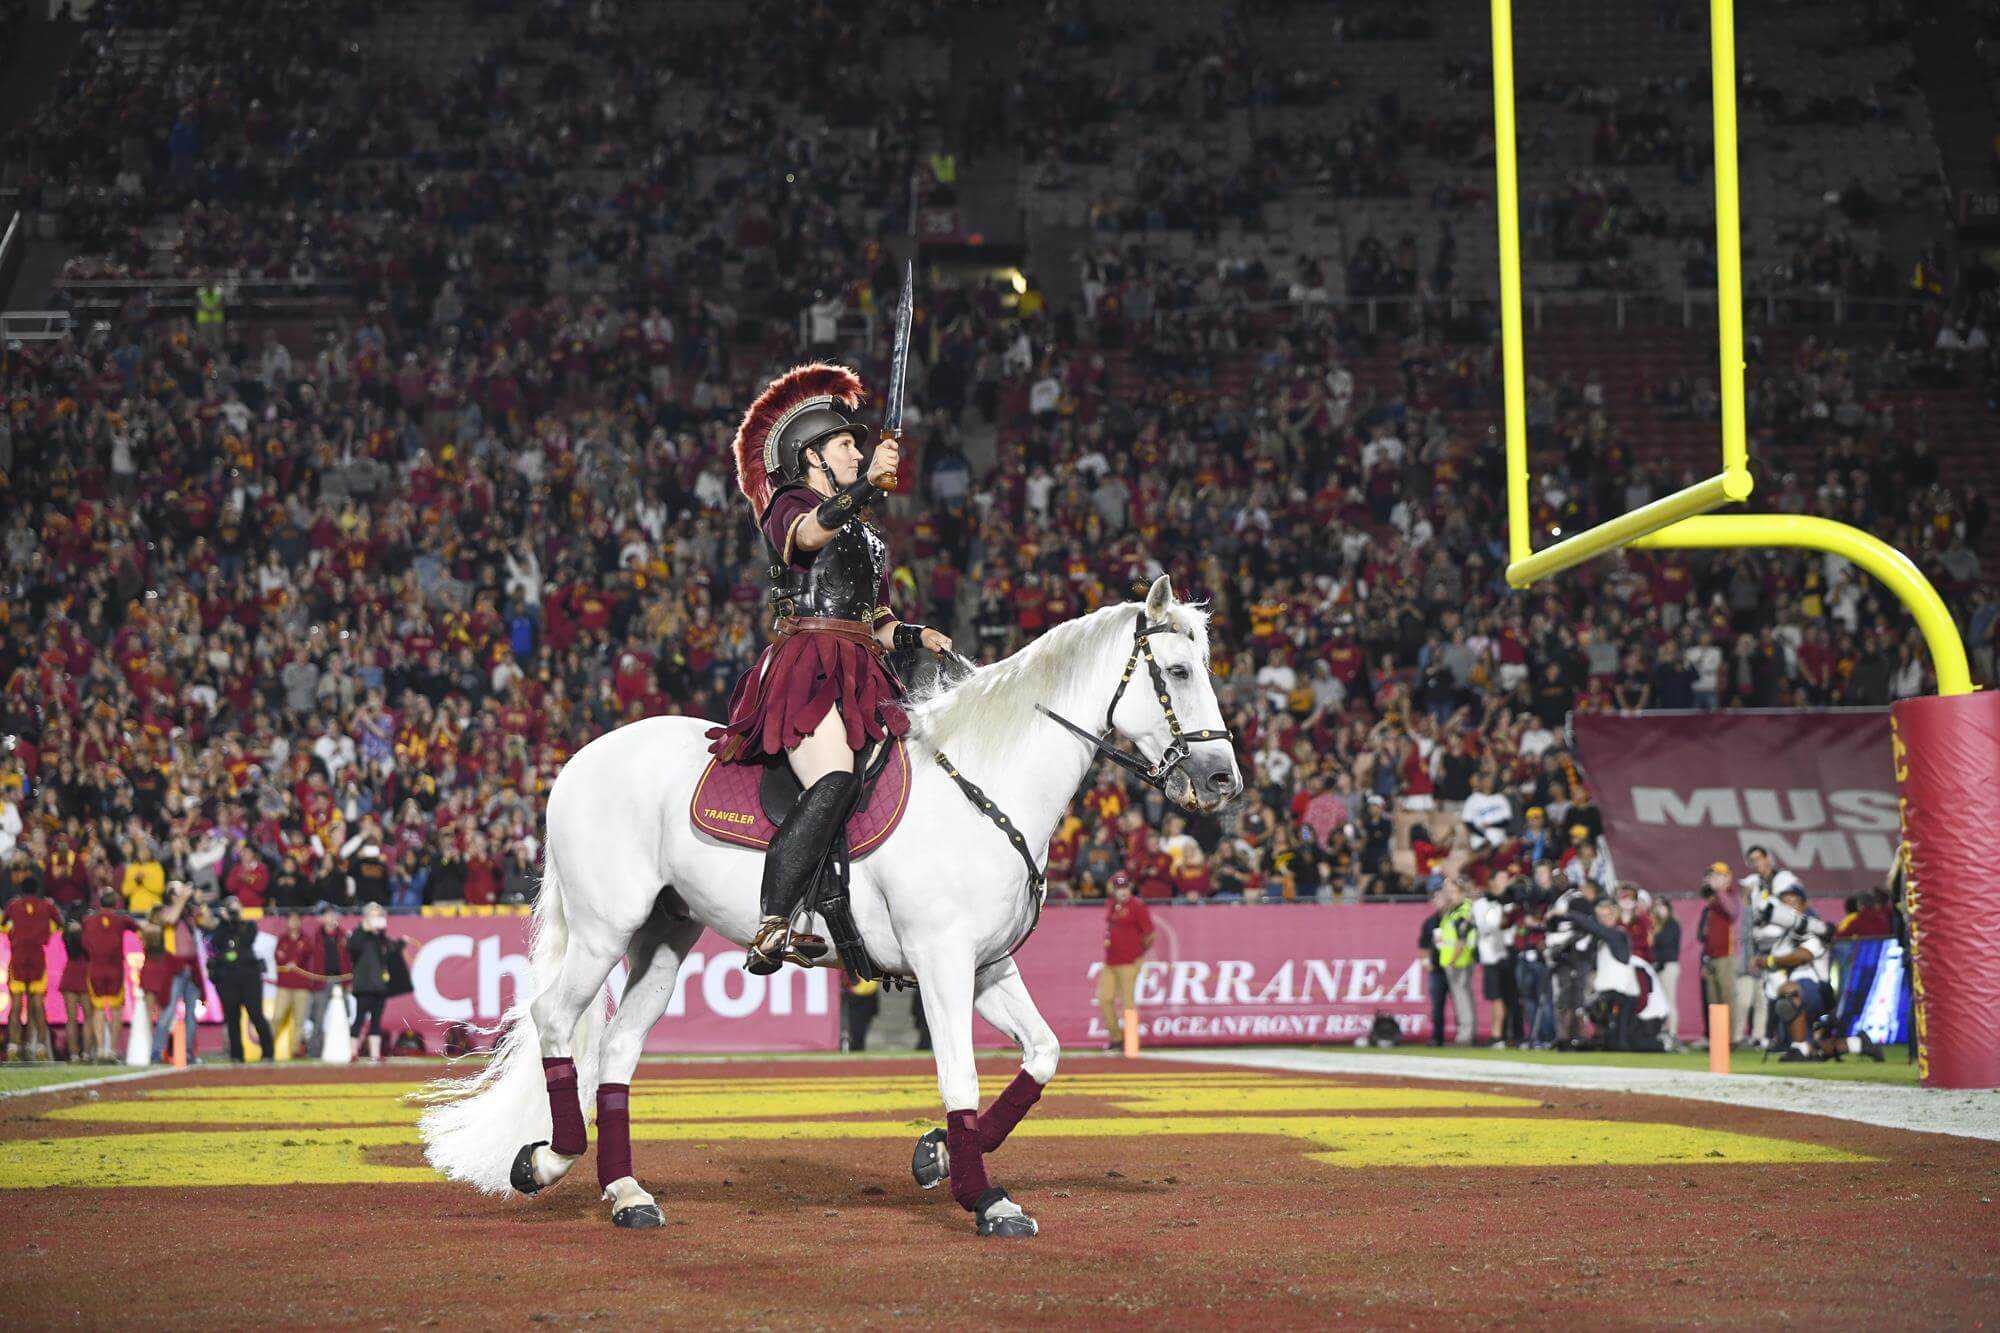 Horsing Around for the Kentucky Derby: The Tradition of USC's Mascot, Traveler